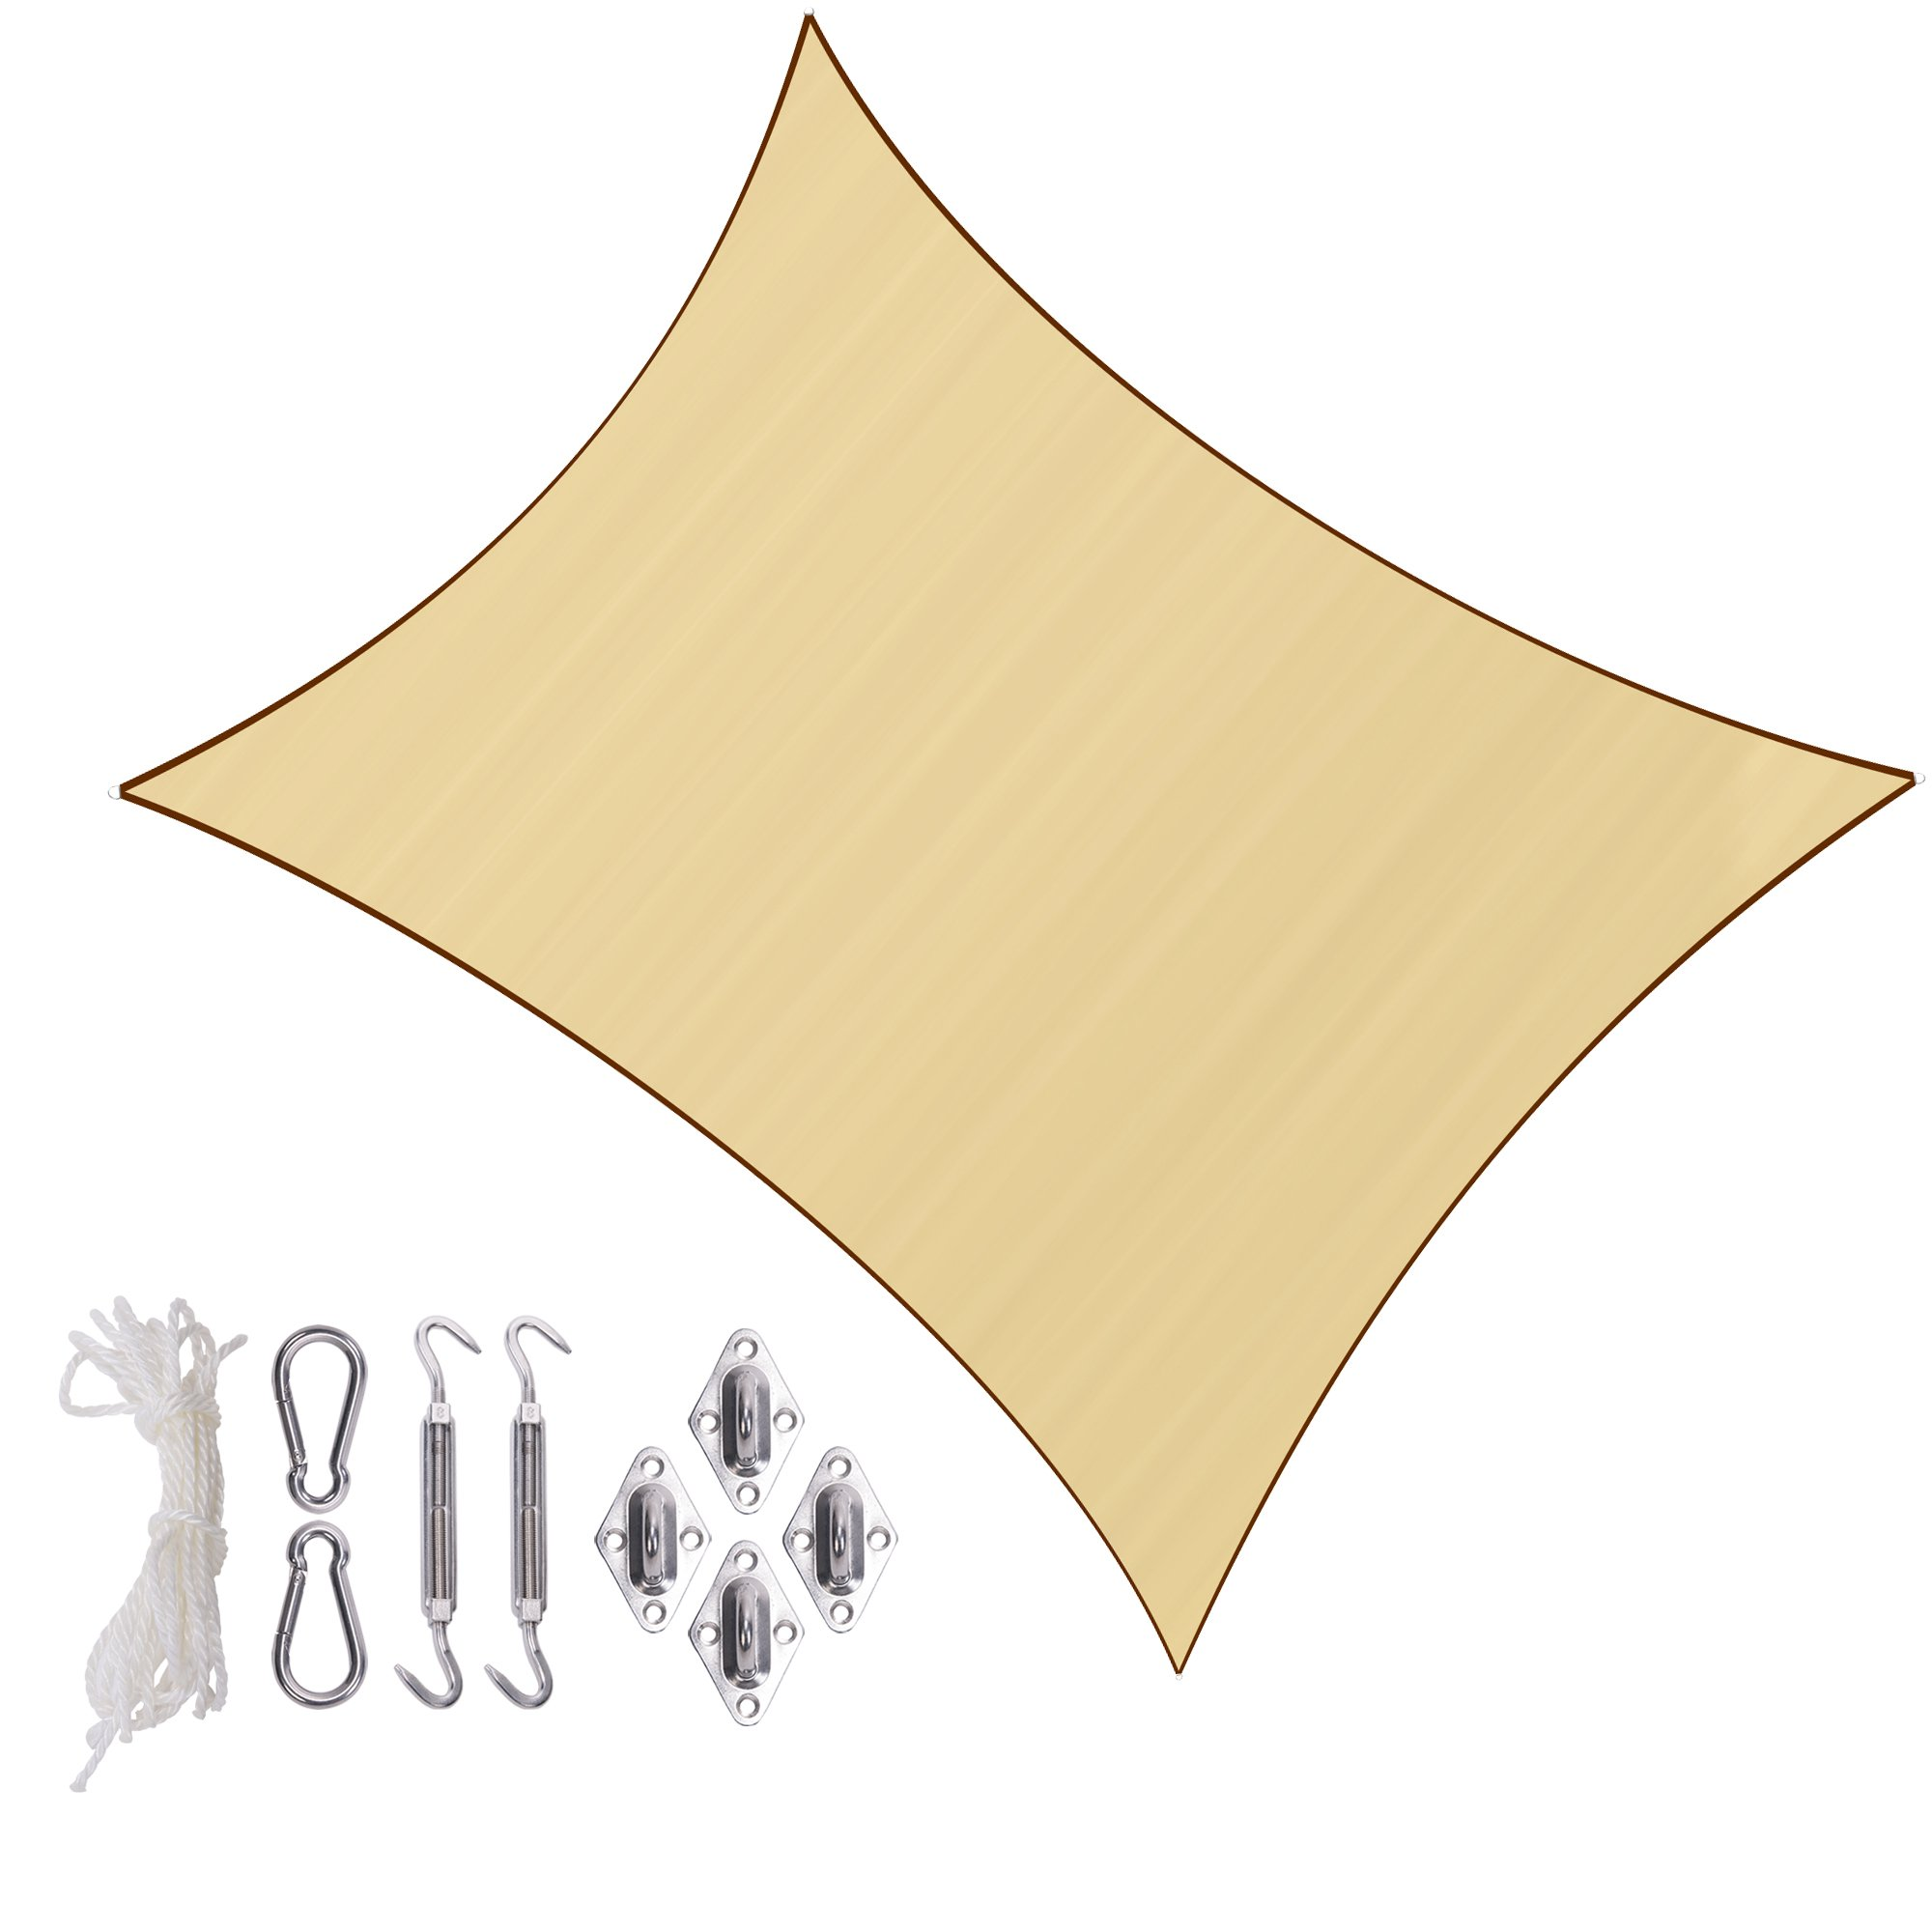 Sunlax 13' x 20' Sand Color Rectangle UV Block Sun Shade Sail Canopy with Stainless Steel Hardware Kit for Patio and Outdoor